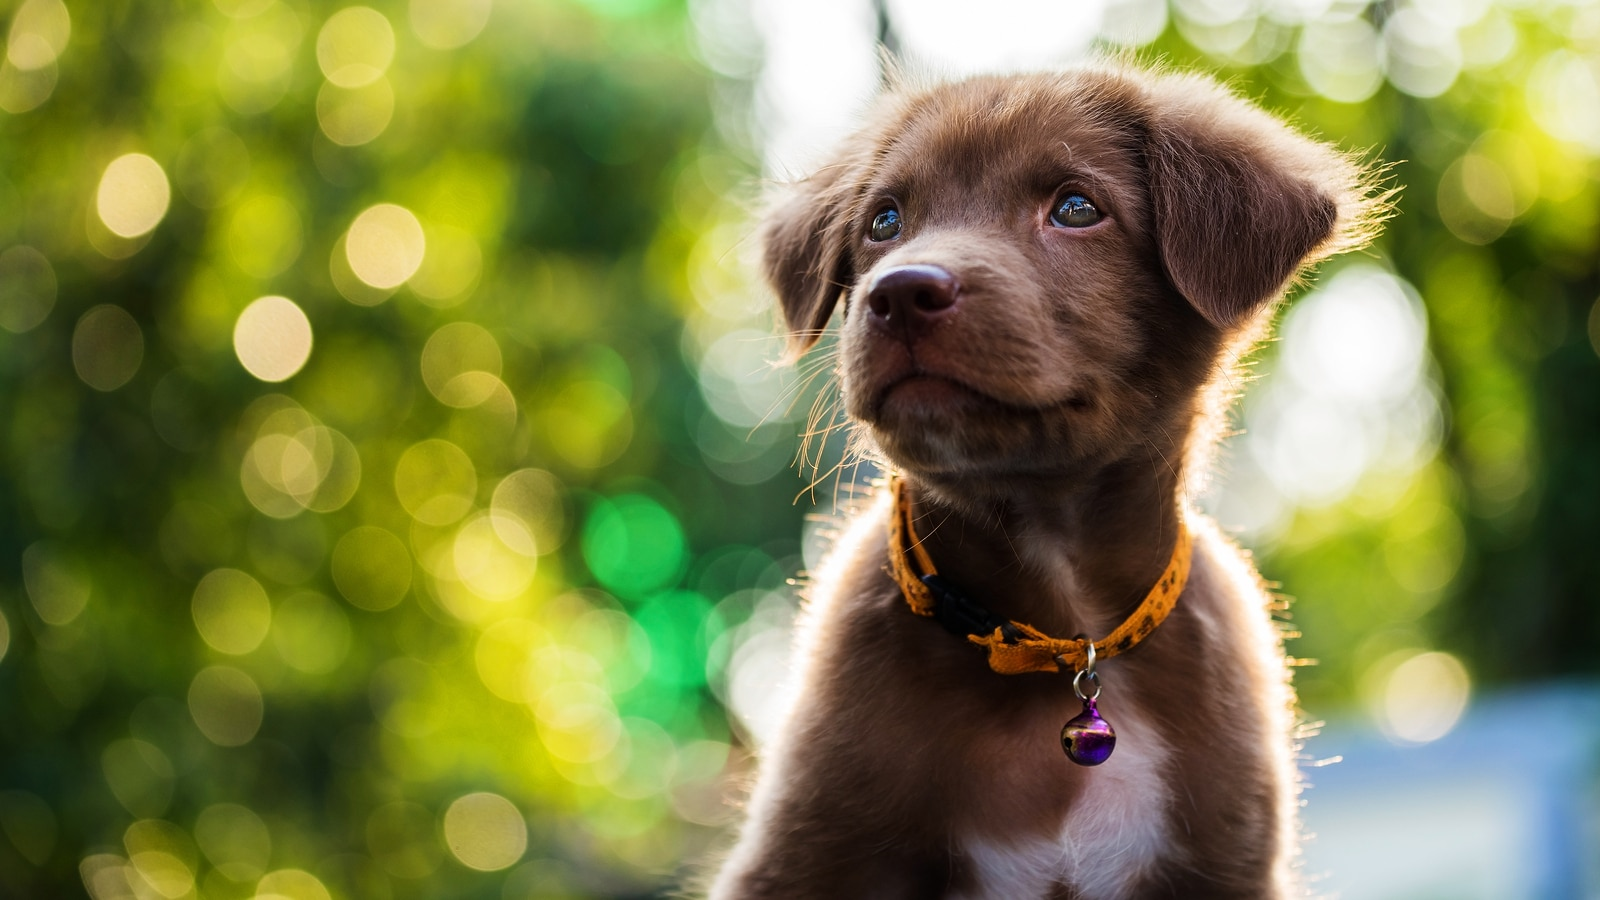 Little brown adorable puppy with sunset background